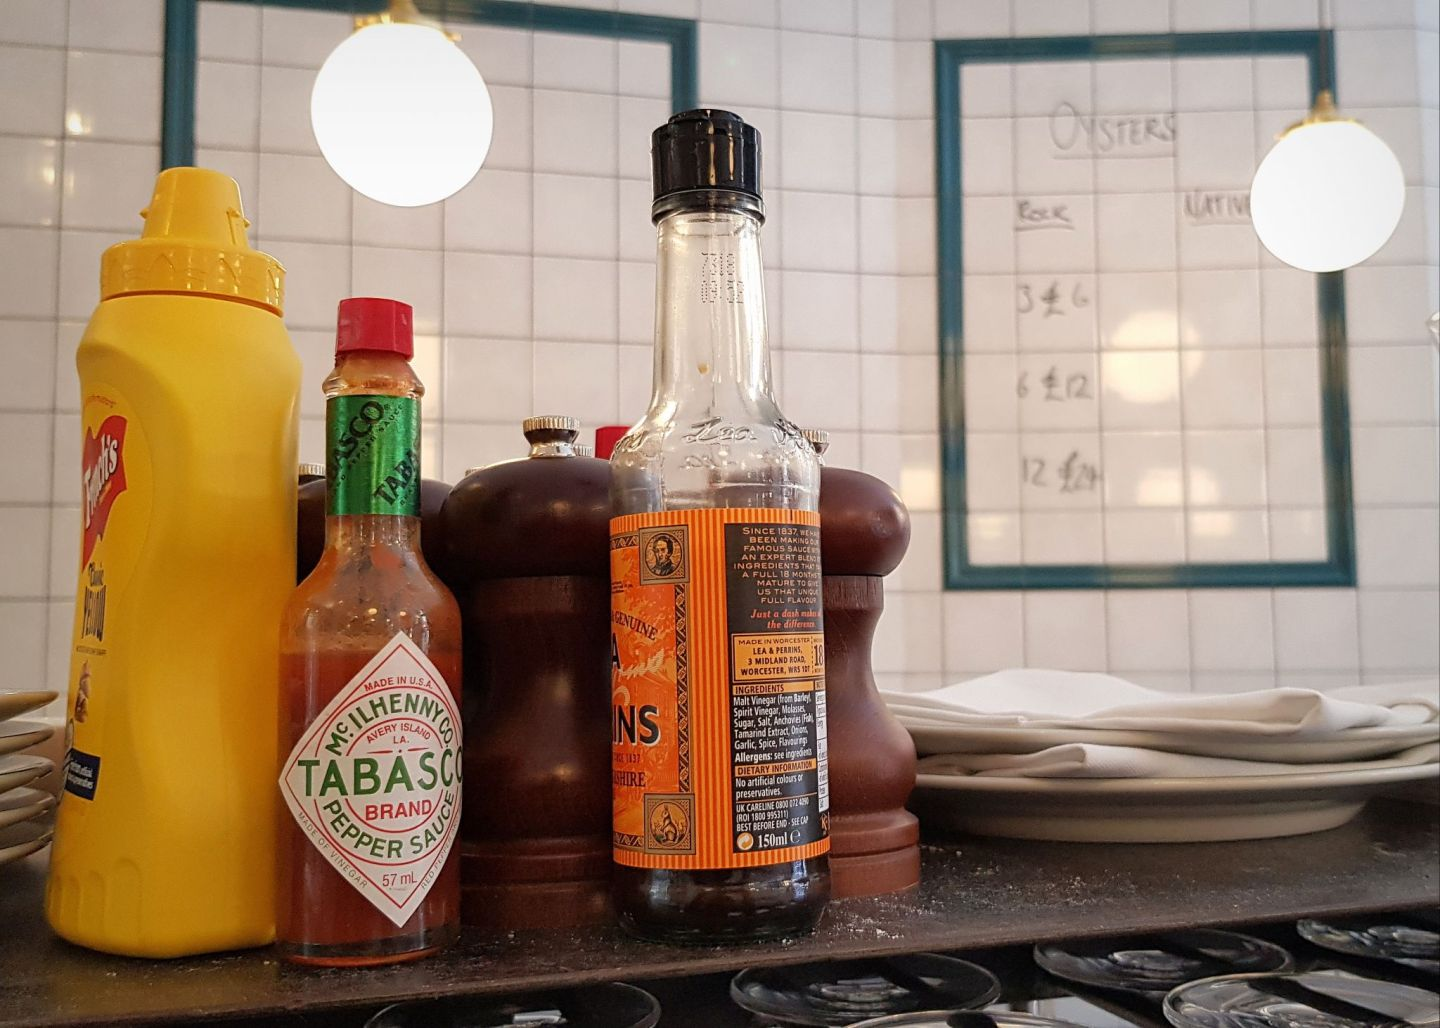 If you're looking for a London fish restaurant, look no further than Parsons, with an array of condiments to choose from.